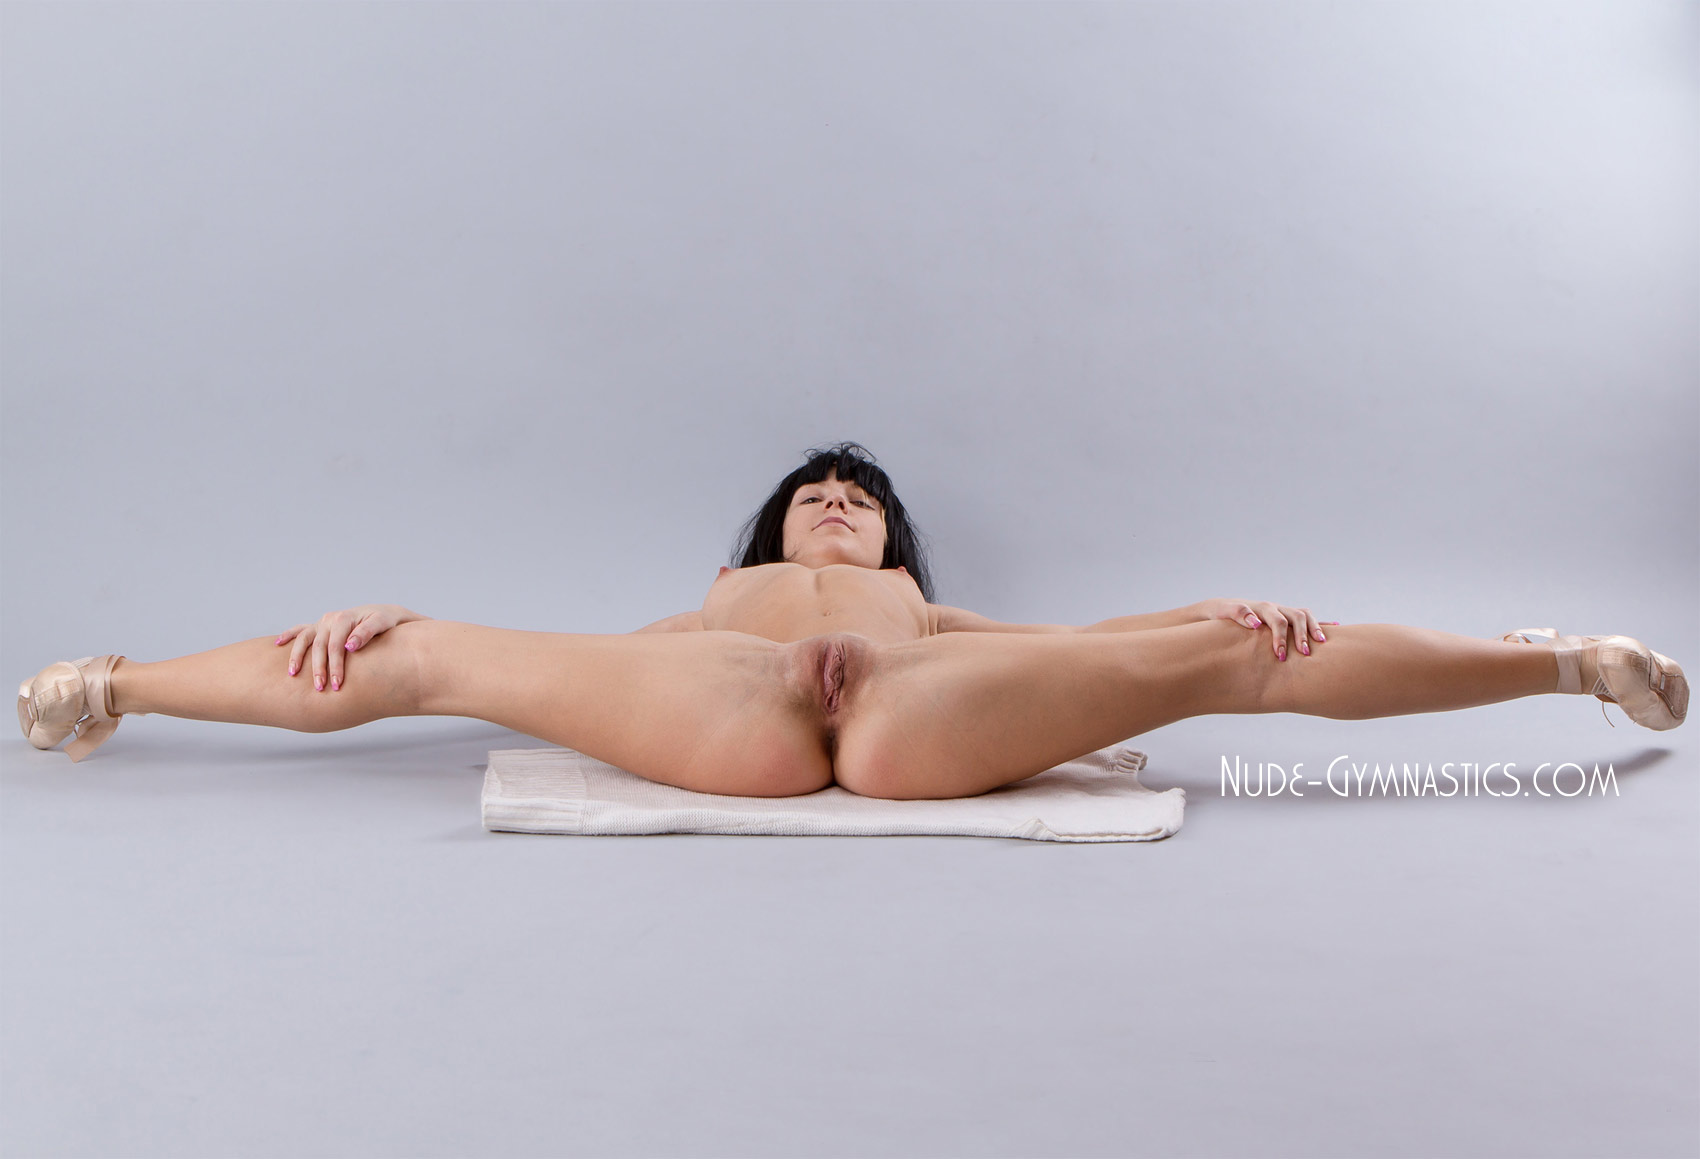 Flex Naked Gymnastics 12